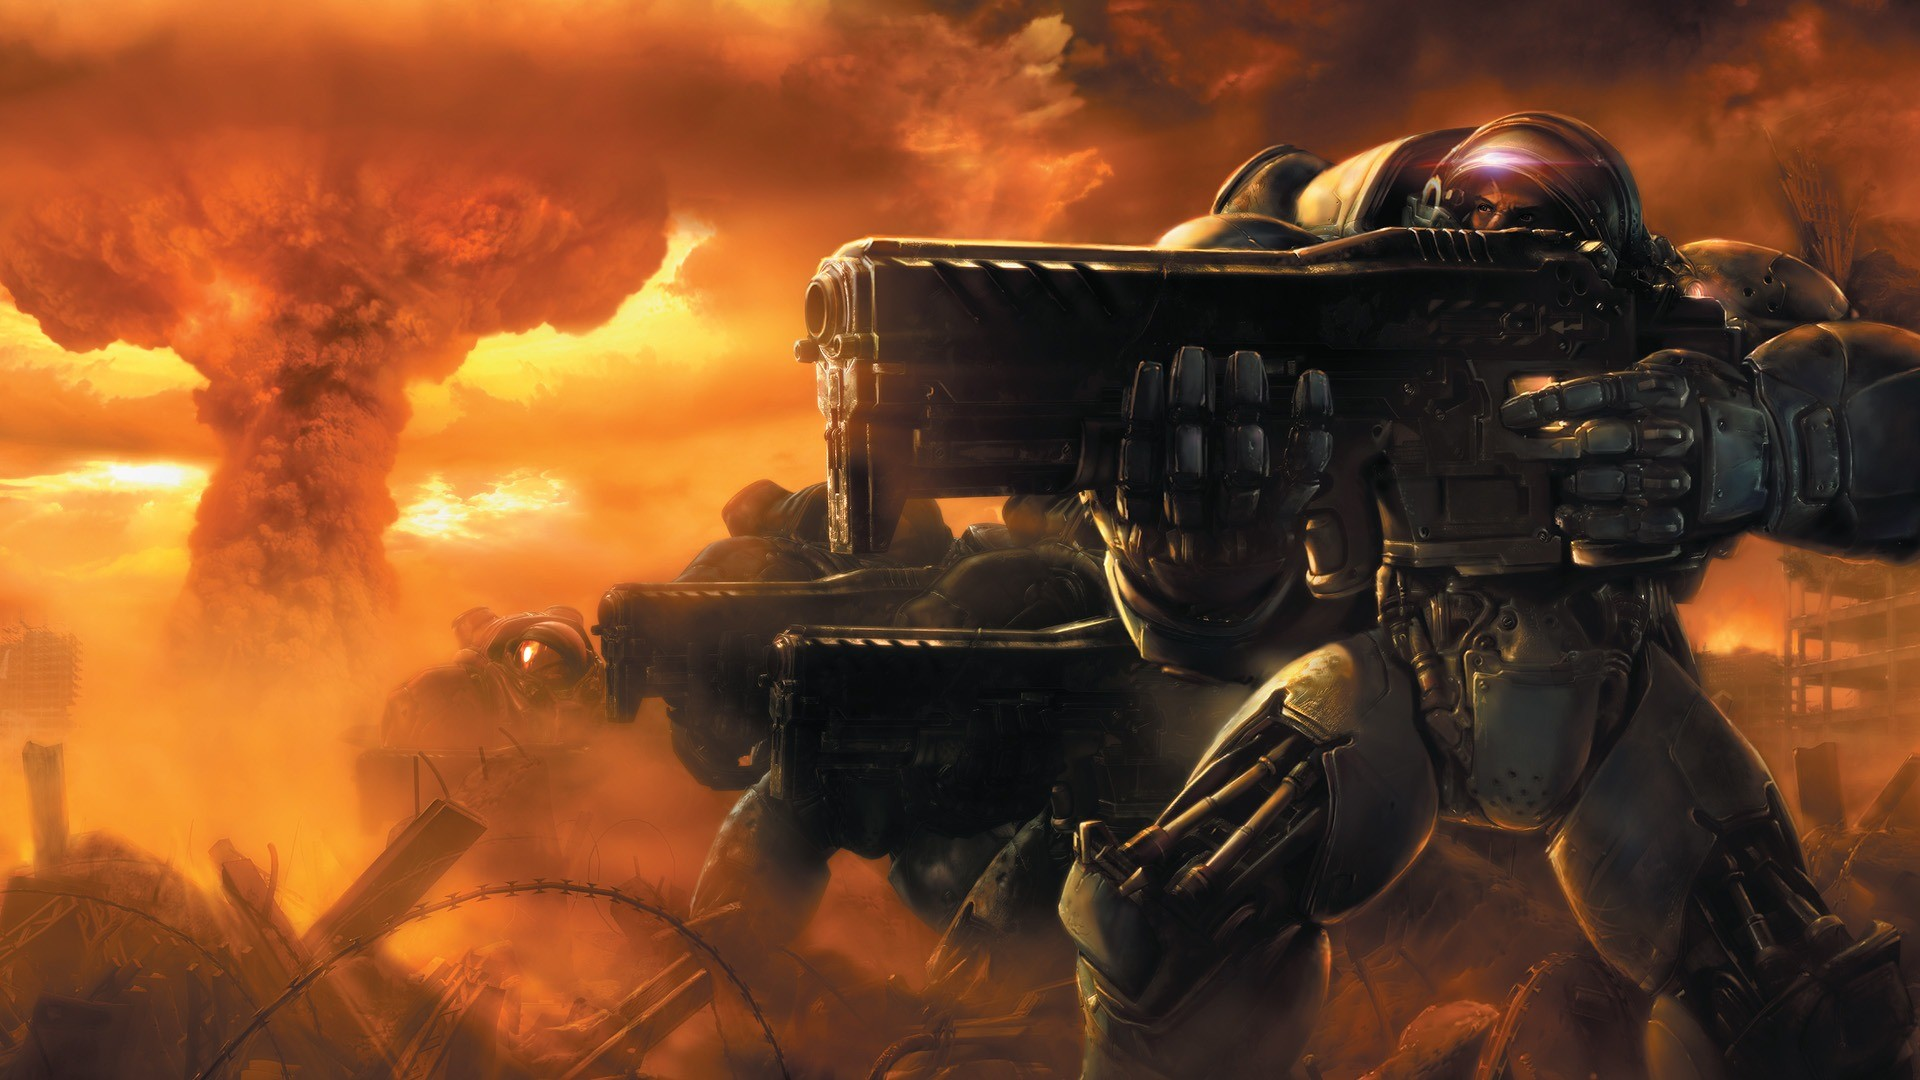 Starcraft 2-wallpaper - Starcraft 2 Wallpaper 1080p , HD Wallpaper & Backgrounds